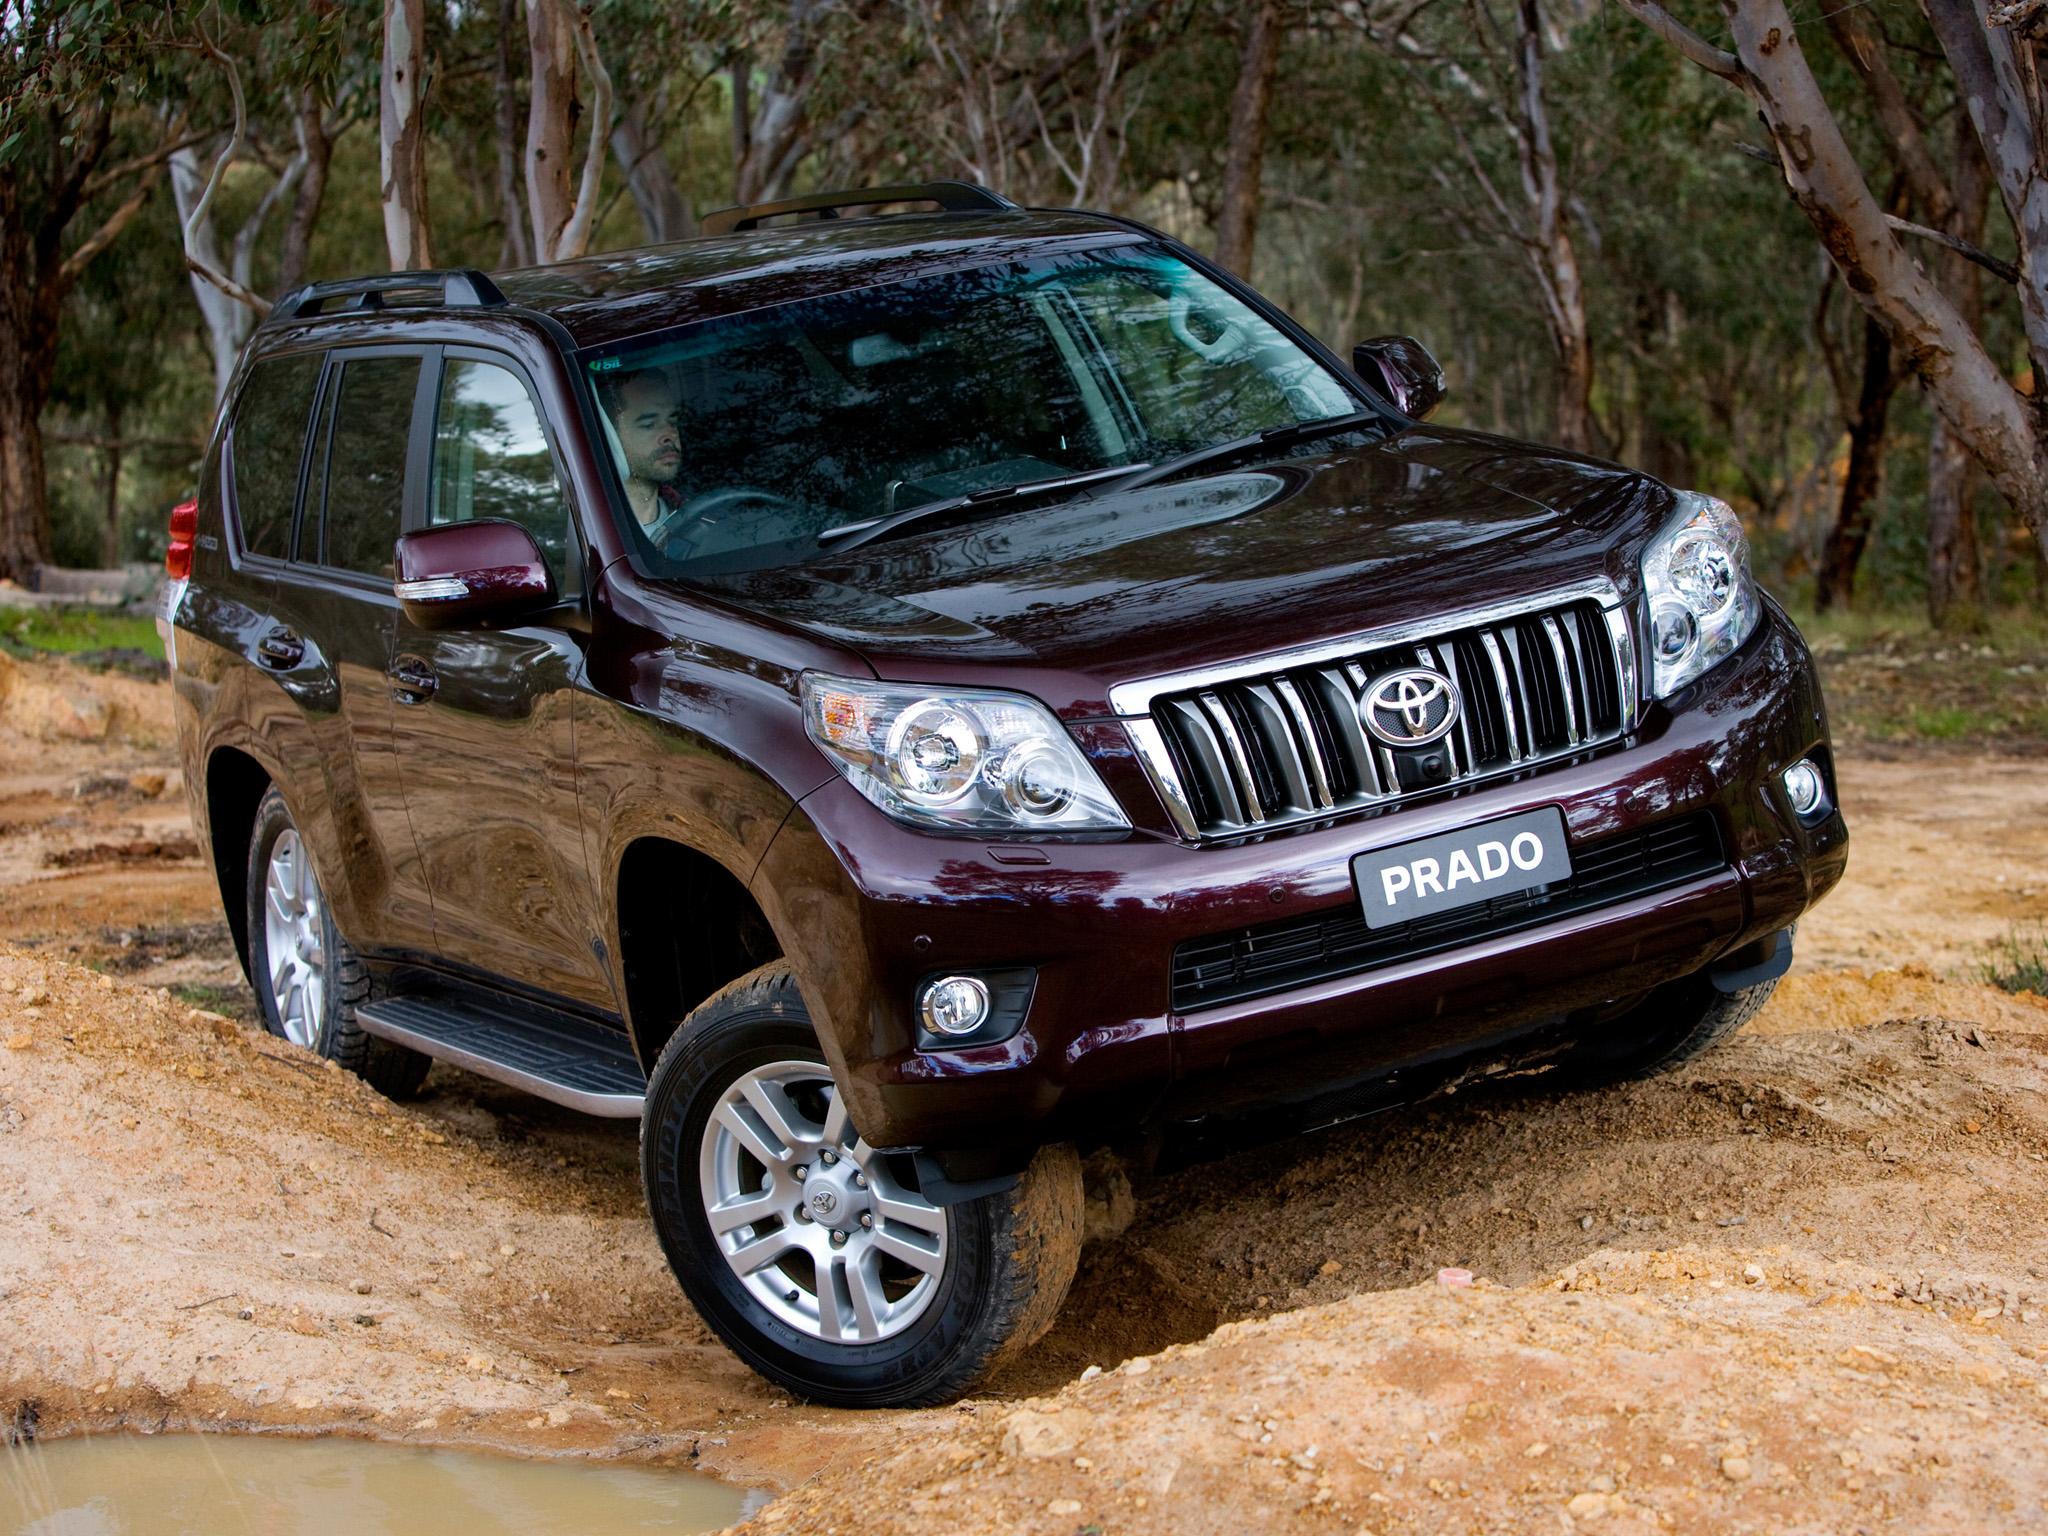 Toyota Land Cruiser Prado 3.0 2009 photo - 9